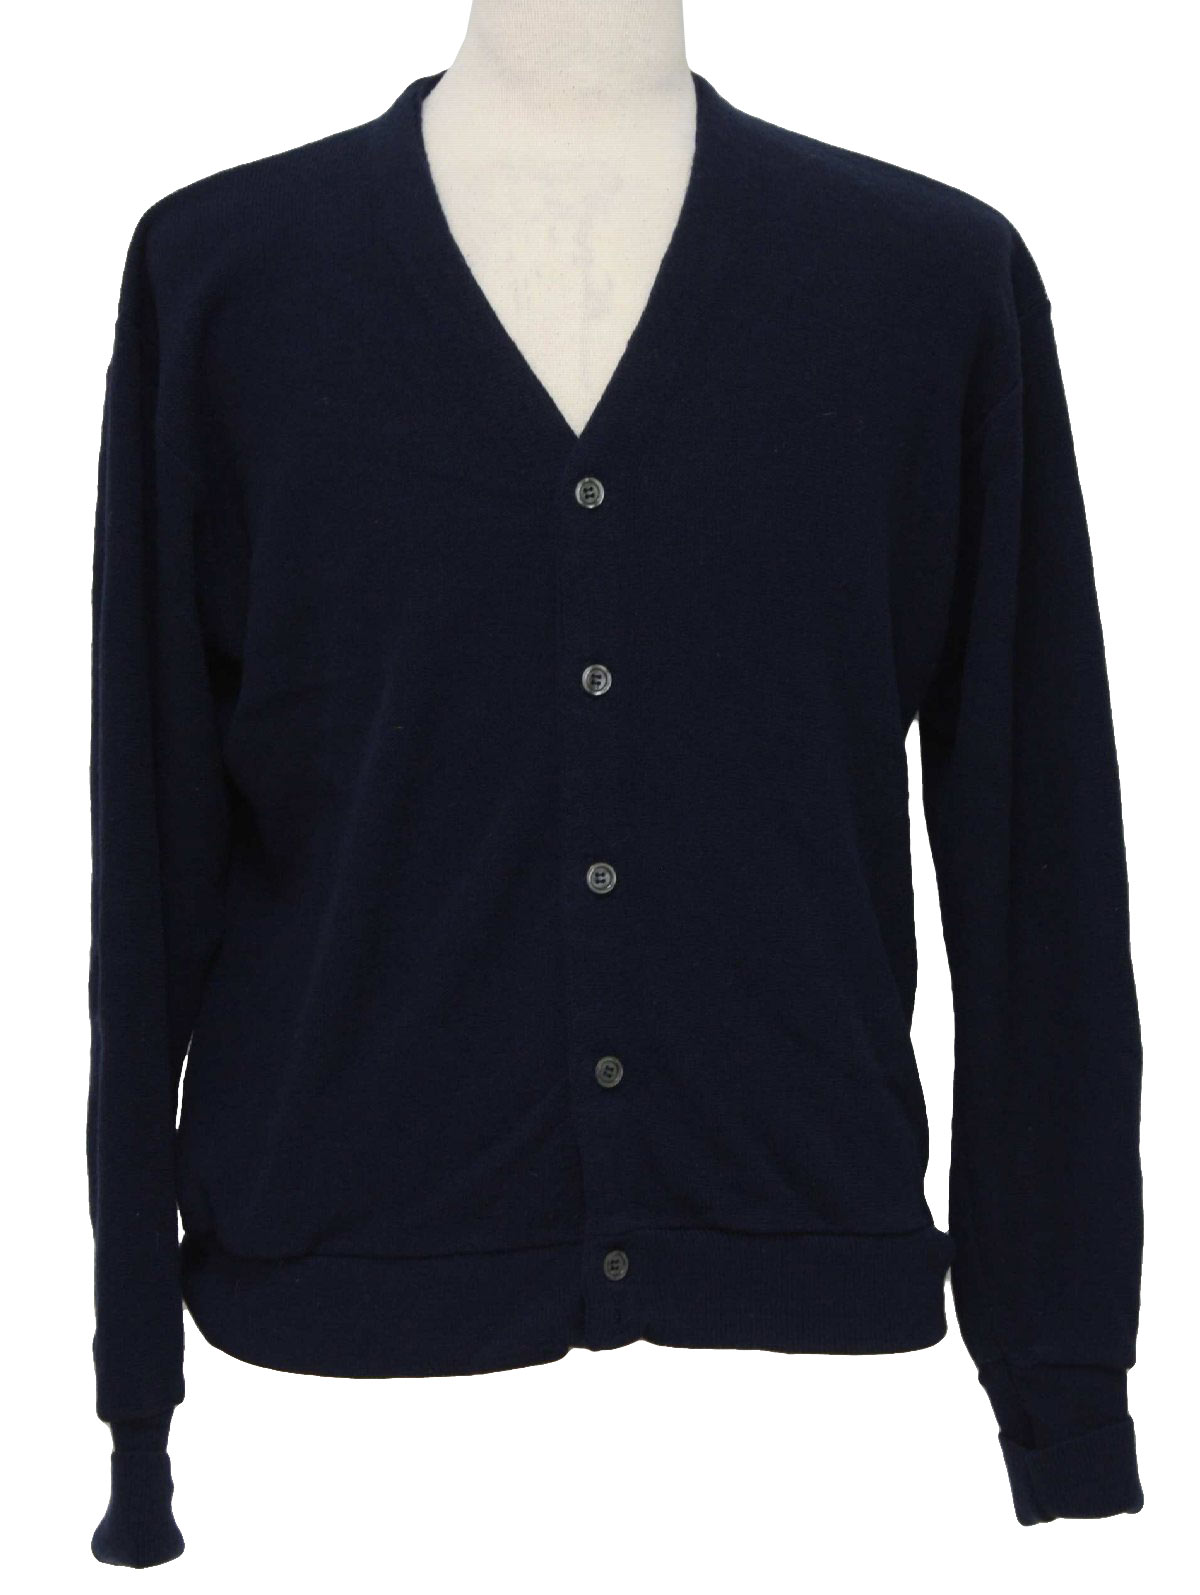 Shop Men's Sweaters at s2w6s5q3to.gq Browse men's crew neck sweaters, cashmere sweaters, cardigans & more. Find the perfect men's sweater for any occasion here. Rugged merino wool bird's-eye crewneck sweater in navy $ QUICK SHOP. Everyday cashmere mockneck sweater $ available in 4 .